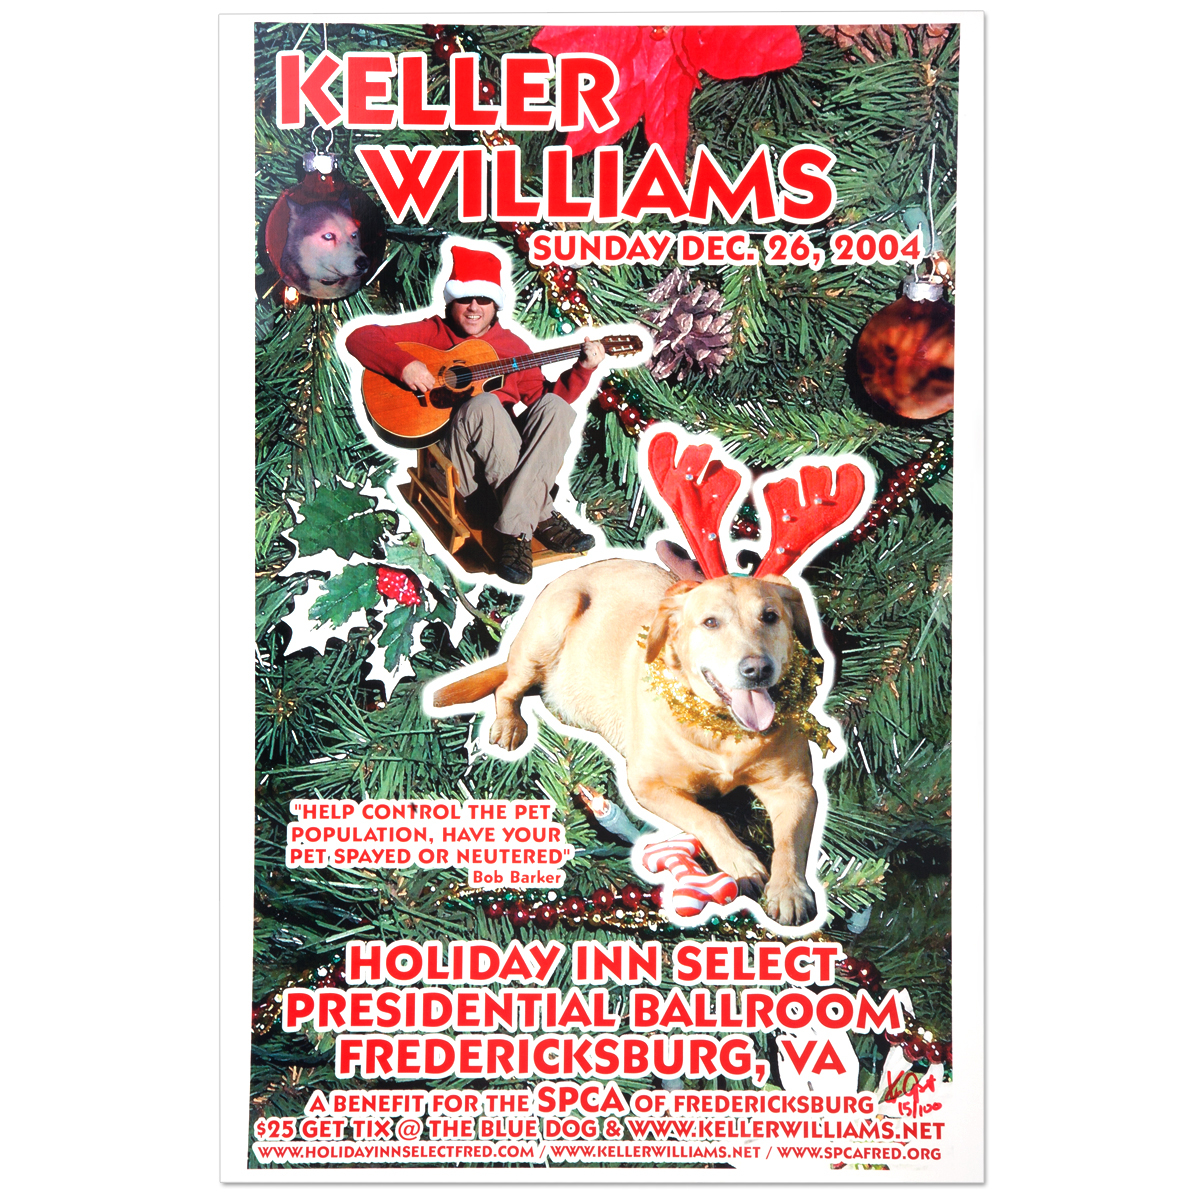 Keller Williams Fredericksburg, VA 12/26/04 Event Poster